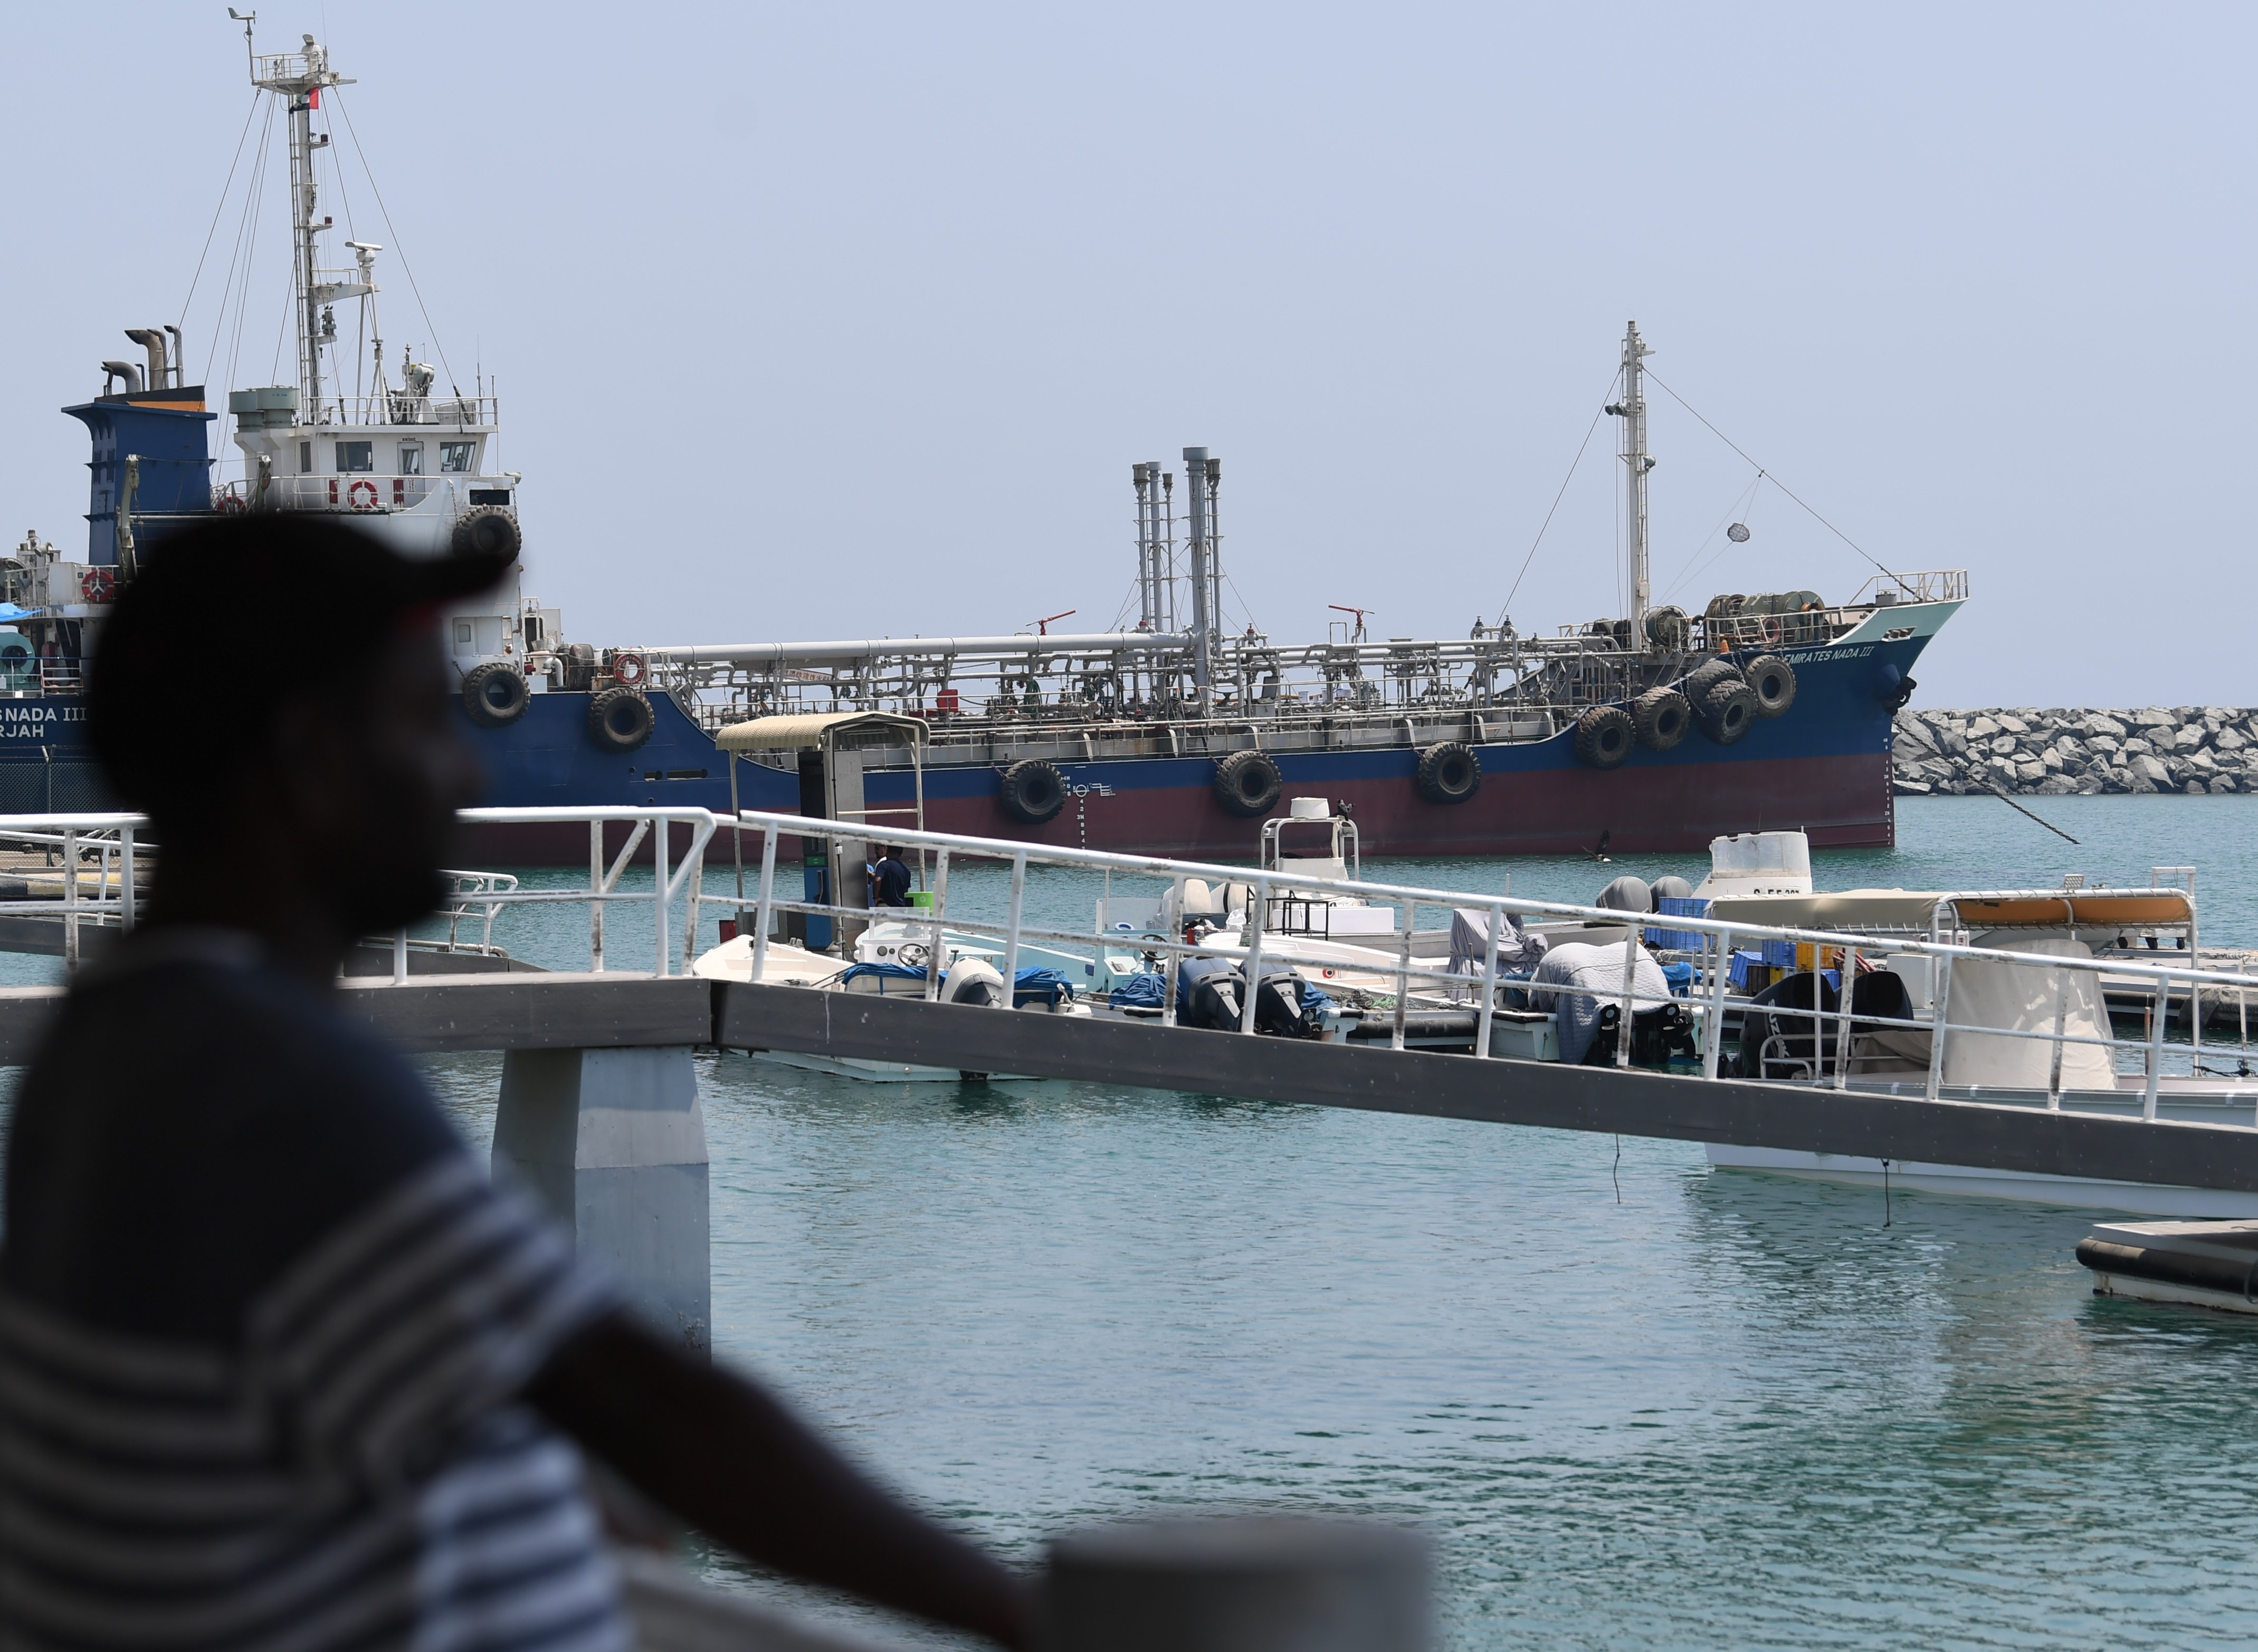 A man watches on July 2, 2019 the ships movement in the port of Fujairah in the east of the United Arab Emirates (UAE), where recent tensions spiraling between Iran and the United States have affected movement in the Gulf of Oman, near the strategic Strait of Hormuz. (Photo by KARIM SAHIB / AFP) (Photo credit should read KARIM SAHIB/AFP/Getty Images)